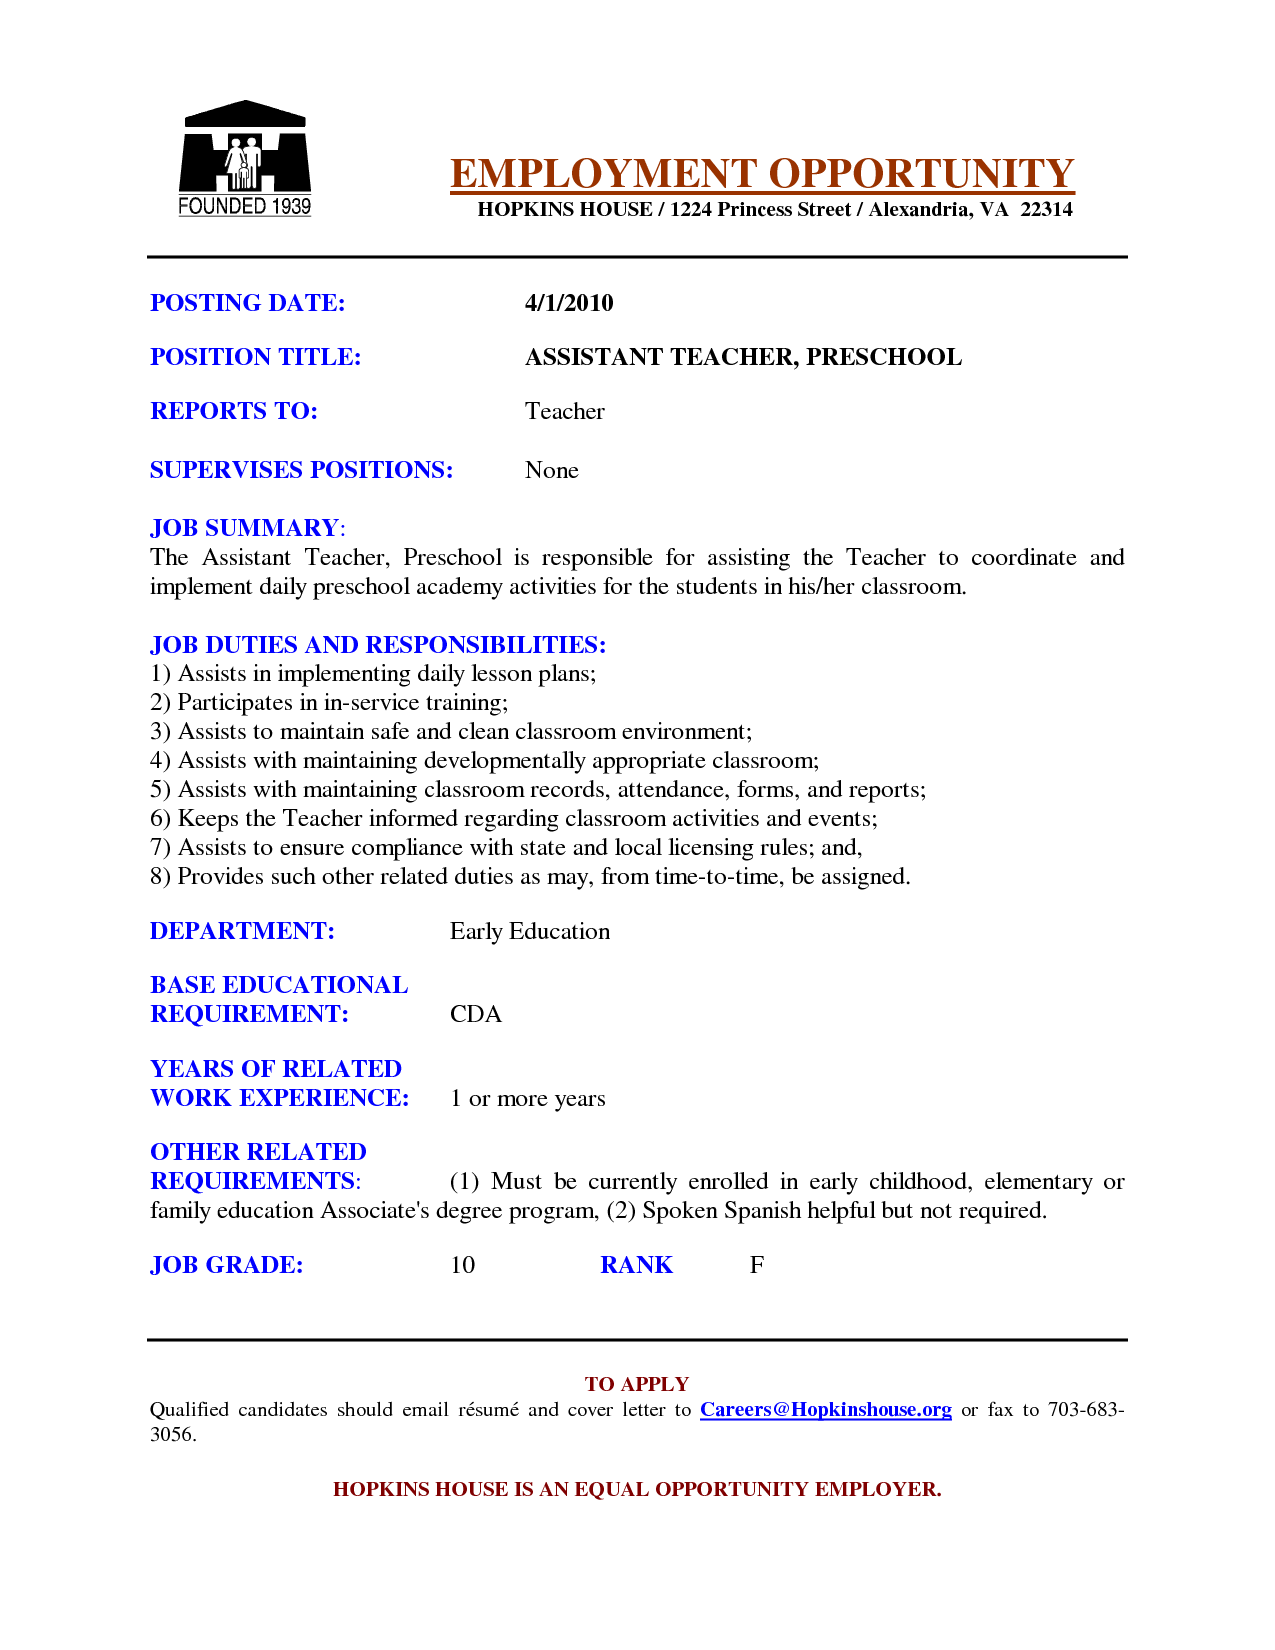 Sample Resume For Kindergarten Teacher Preschool Assistant Teacher